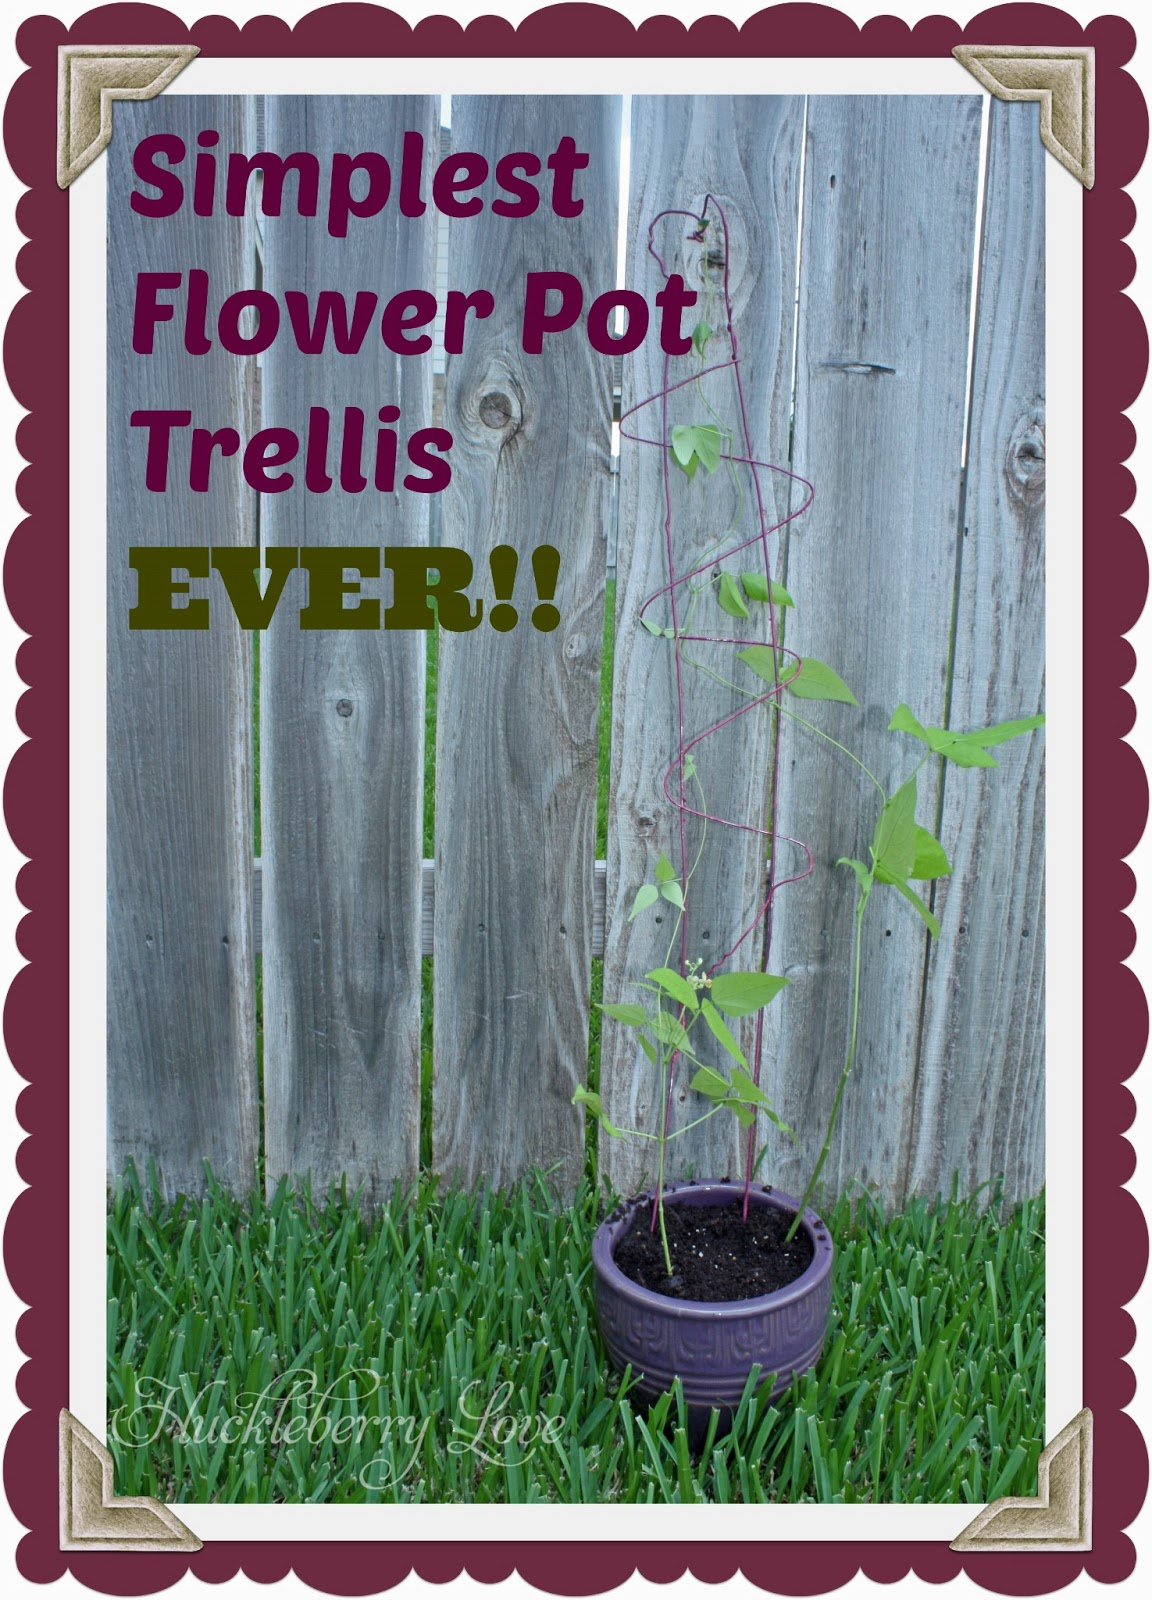 Huckleberry Love: Simplest Flower Pot Trellis, EVER!!